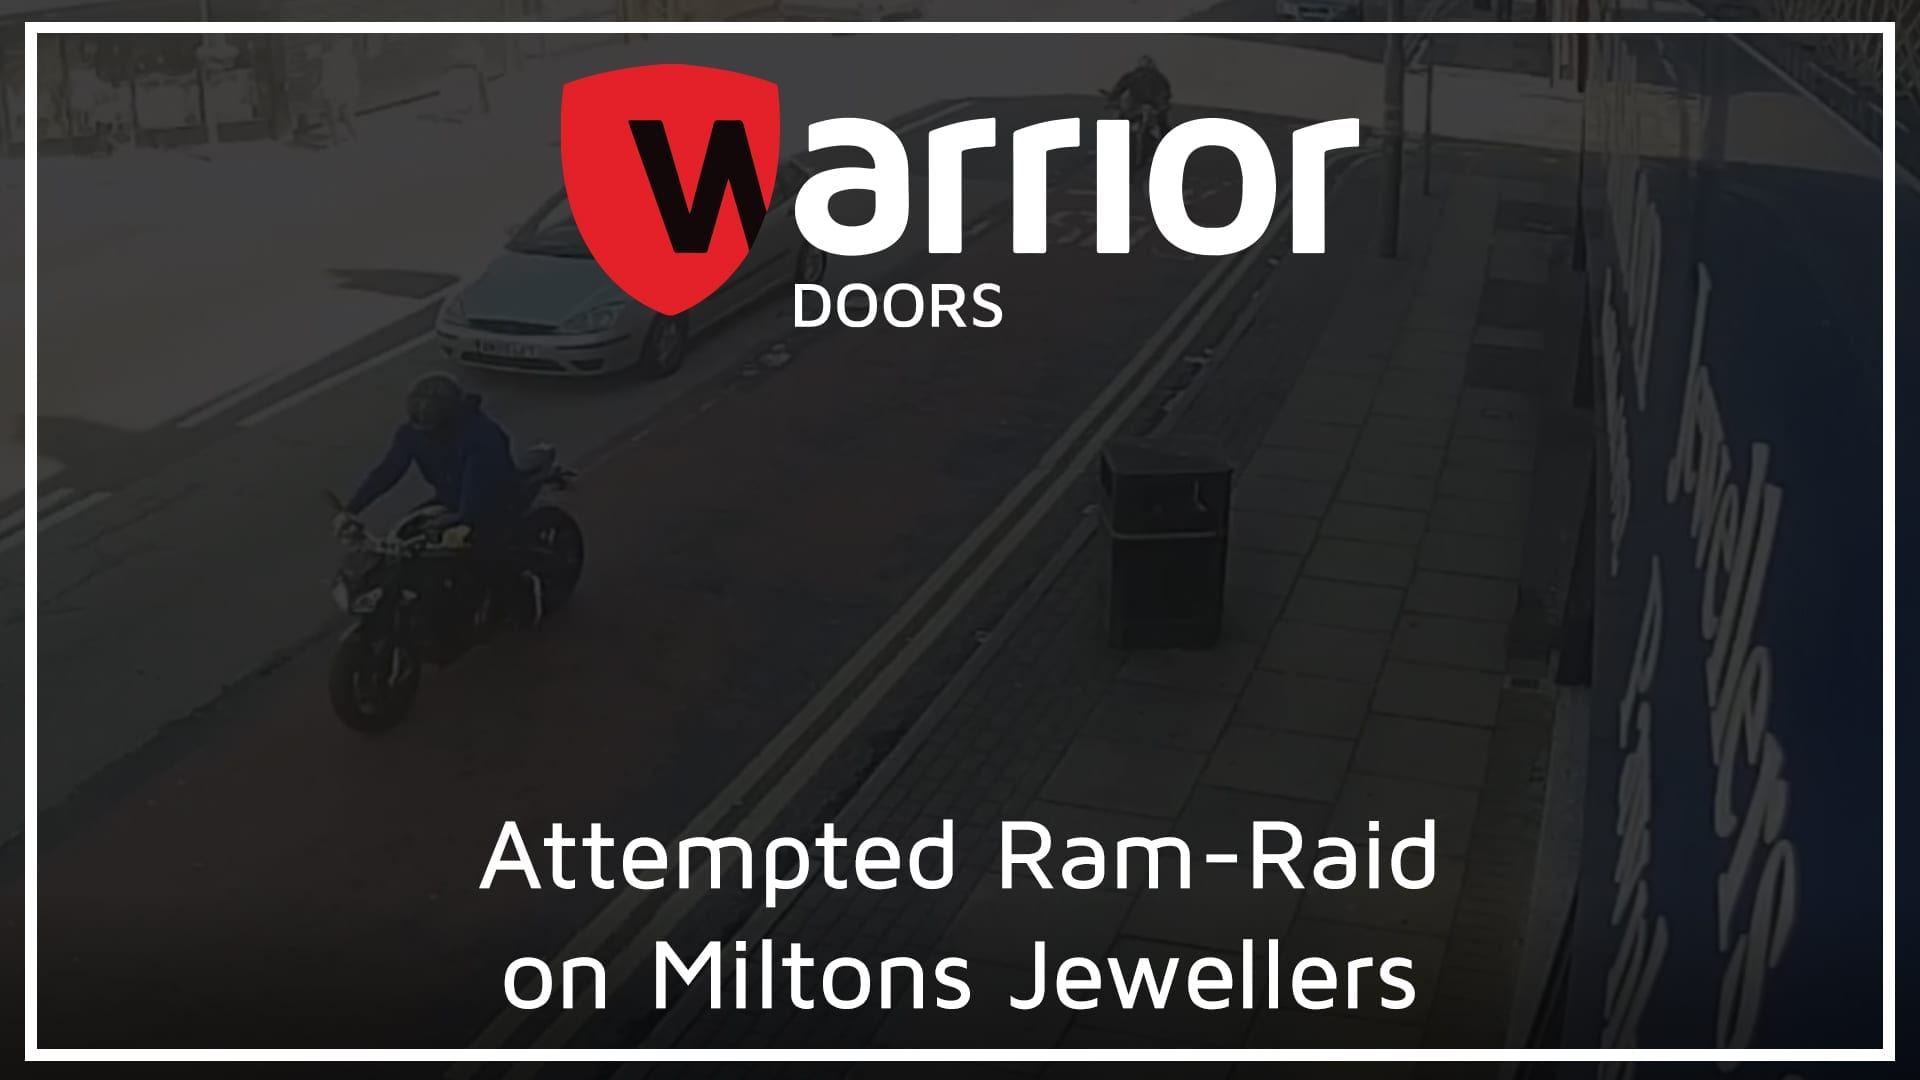 """man on moped outside jewellers with Warrior Doors logo and tect reading """"Attempted Ram-Raid on Miltons Jewellers""""."""